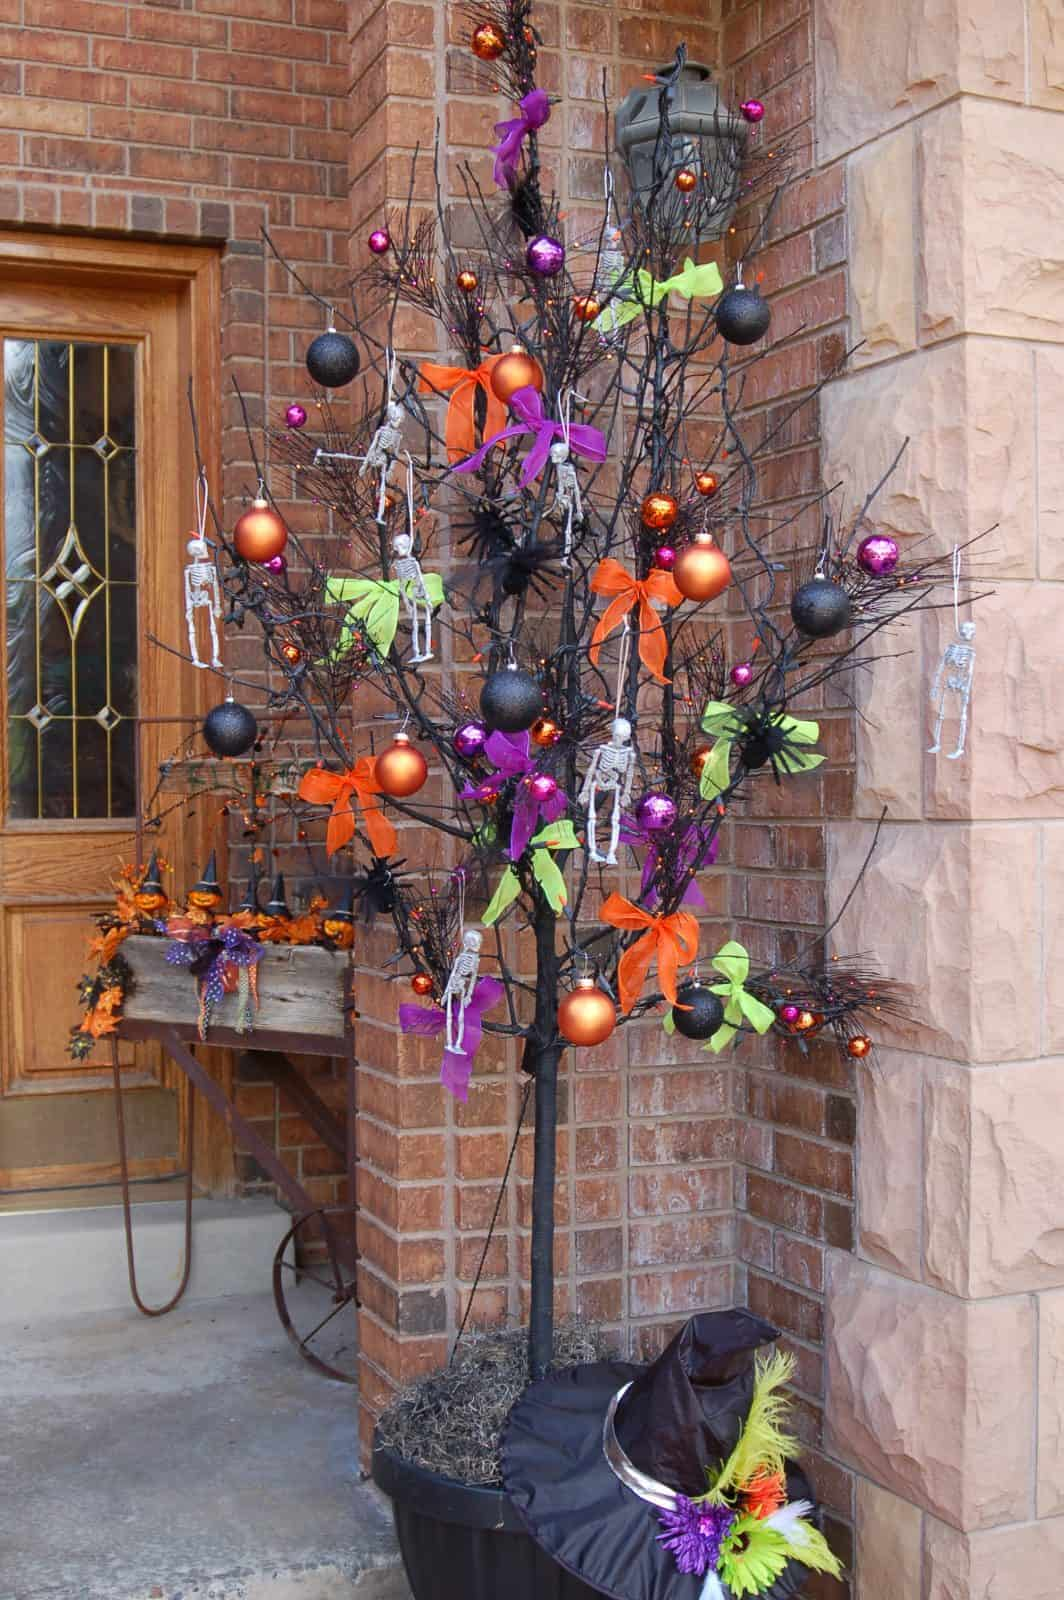 Who said you could only decorate a tree for Christmas? This Halloween tree is fabulous!